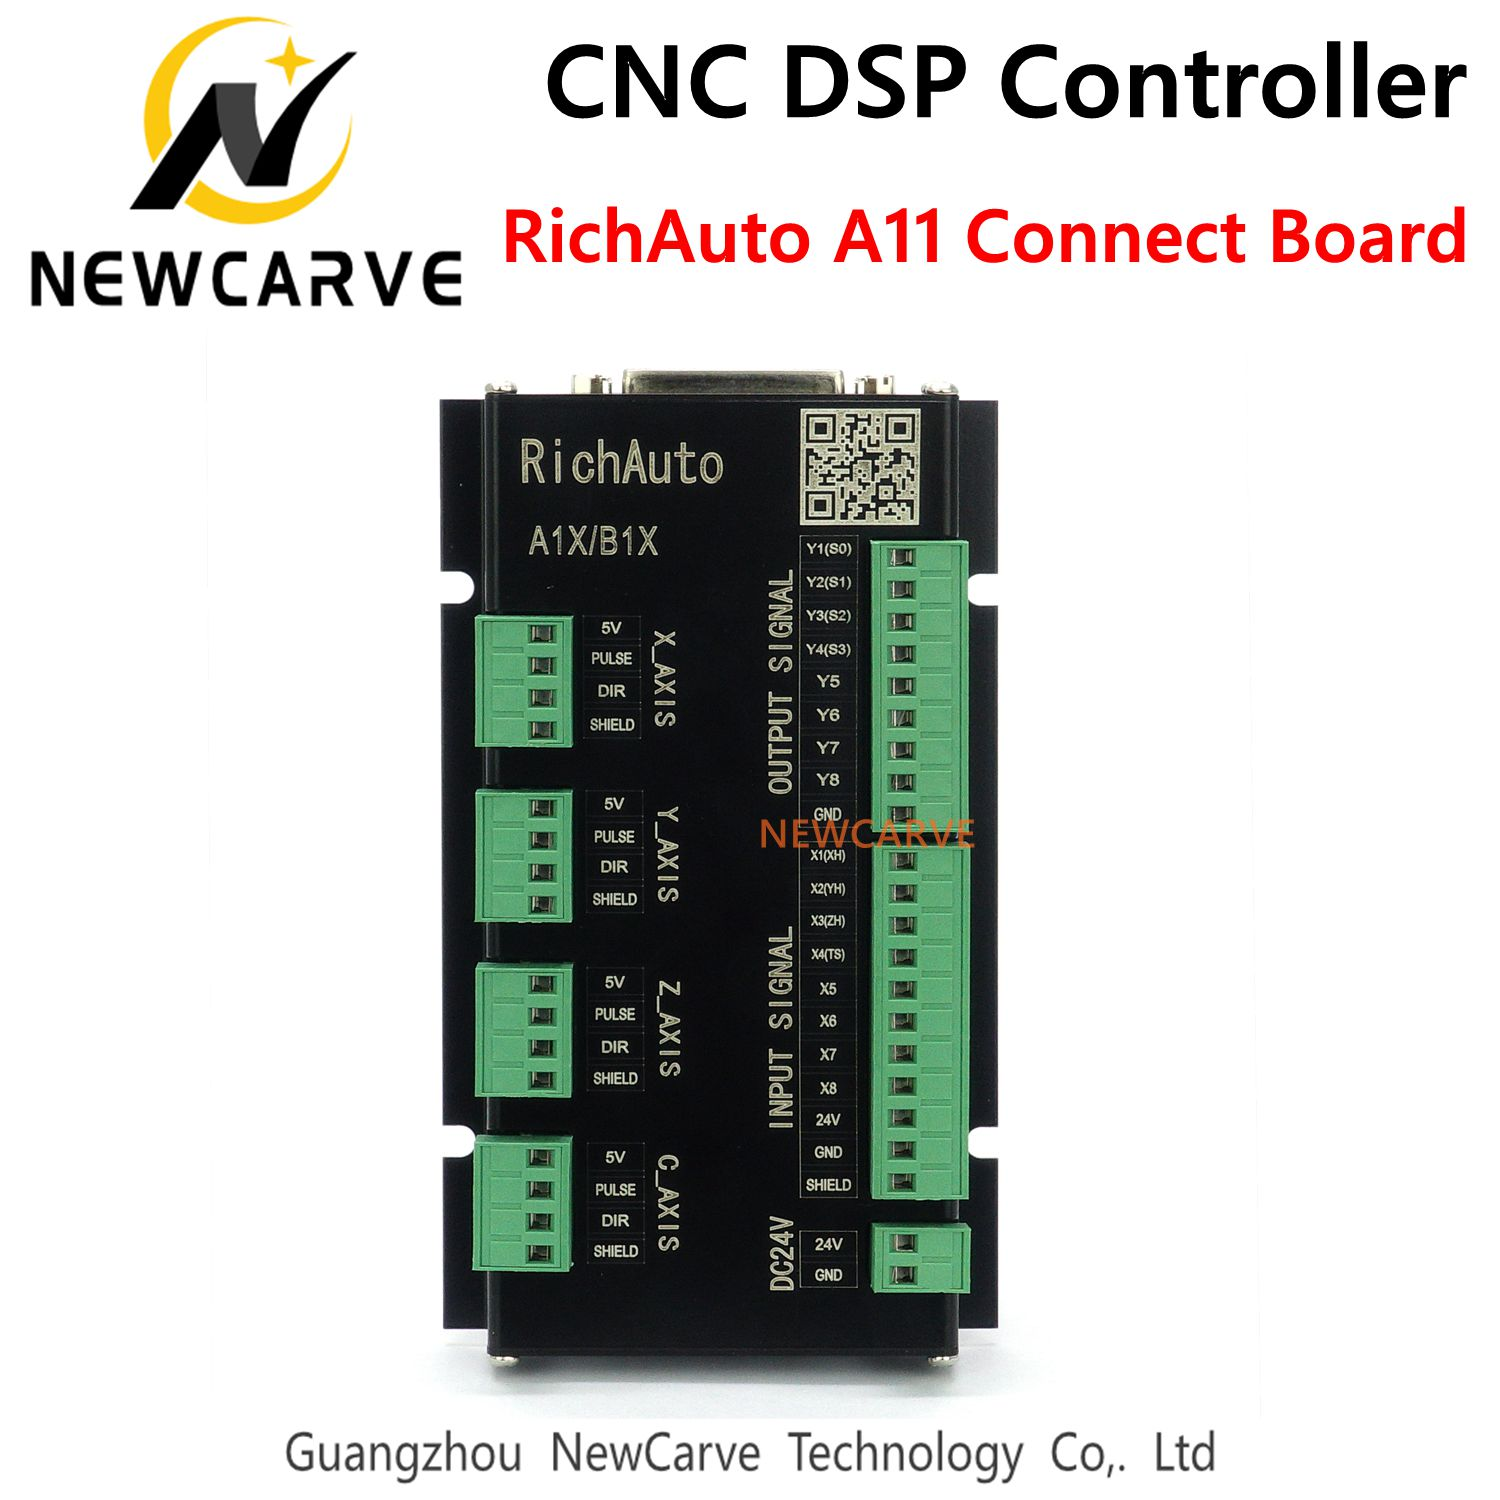 Connect Board Only For RichAuto DSP A1X Series  3 Axis Motion Controller With English Language A11/12/15/18 NEWCARVE